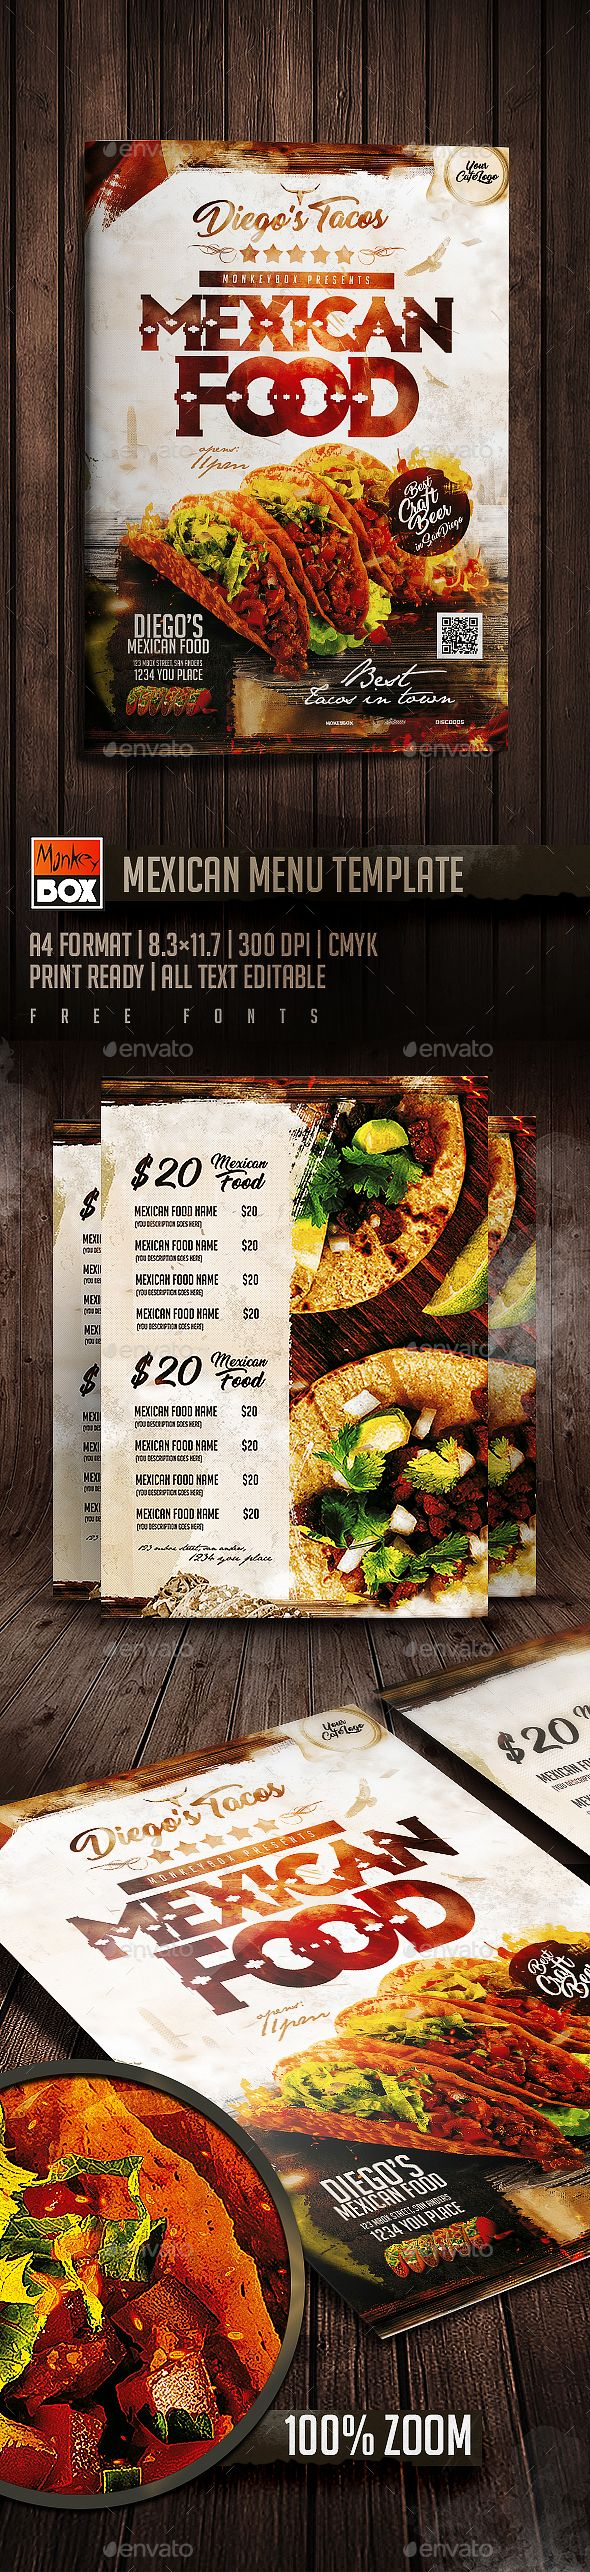 Mexican Menu Template — Photoshop PSD #dinner #street food • Download ➝ https://graphicriver.net/item/mexican-menu-template/18984734?ref=pxcr